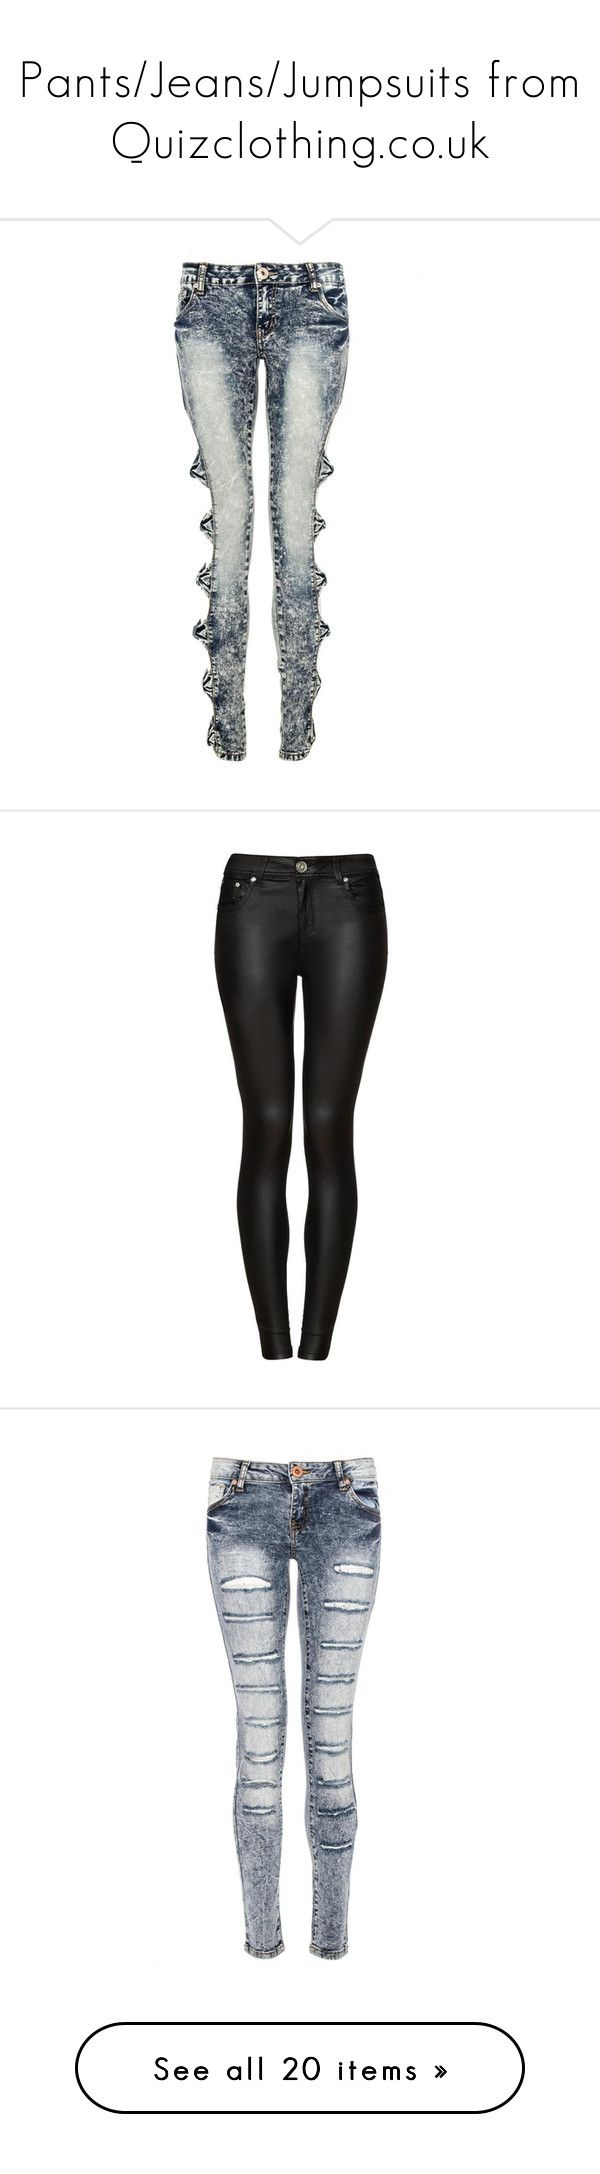 """""""Pants/Jeans/Jumpsuits from Quizclothing.co.uk"""" by surfernurd ❤ liked on Polyvore featuring jeans, white denim jeans, blue jeans, blue denim jeans, white jeans, bow jeans, pants, bottoms, black trousers and shiny stretch pants"""